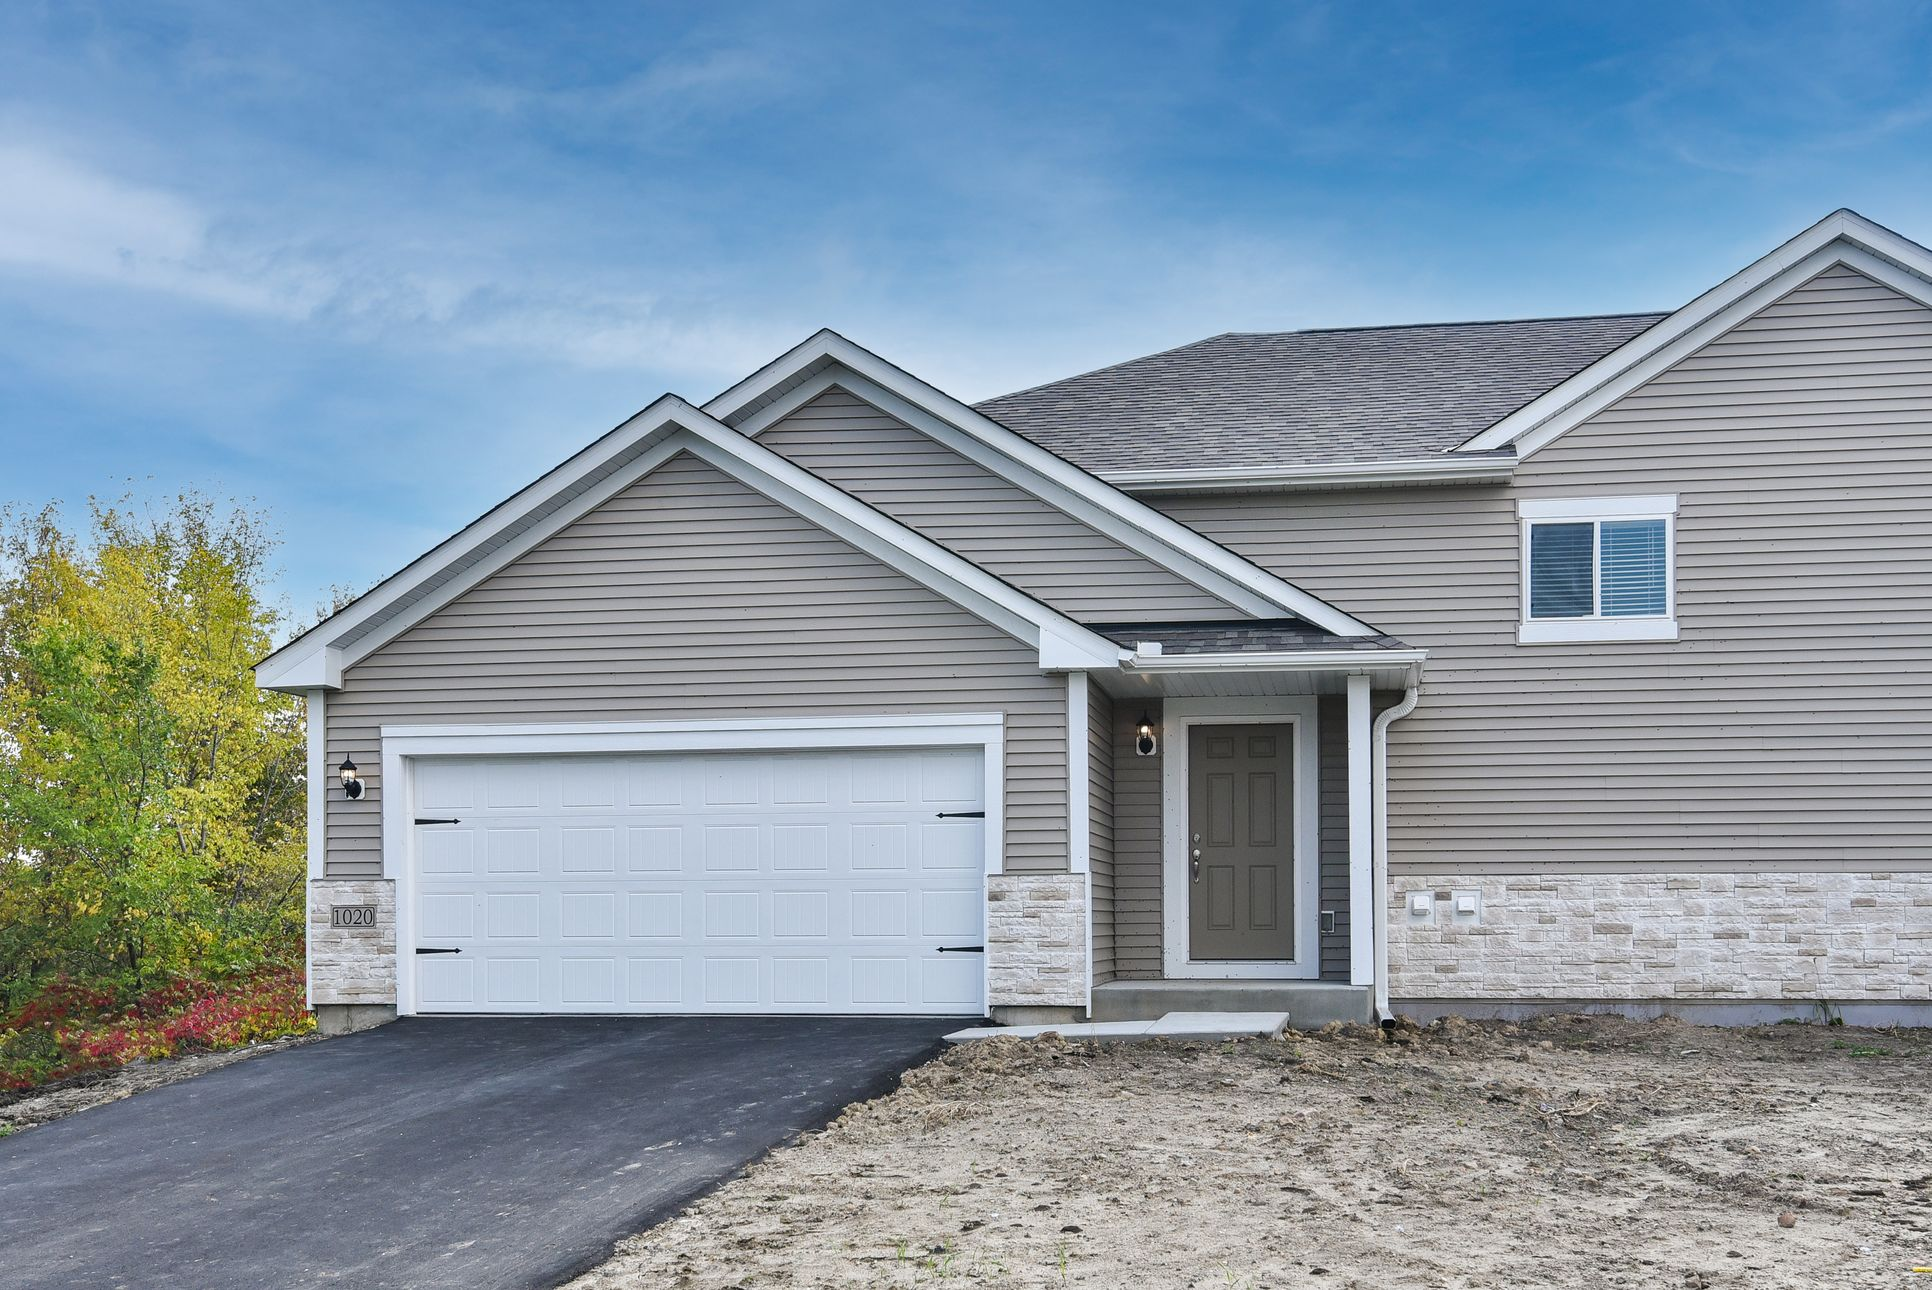 The Grant twinhome by LGI Homes:This home will be available for move-in within 30 days!